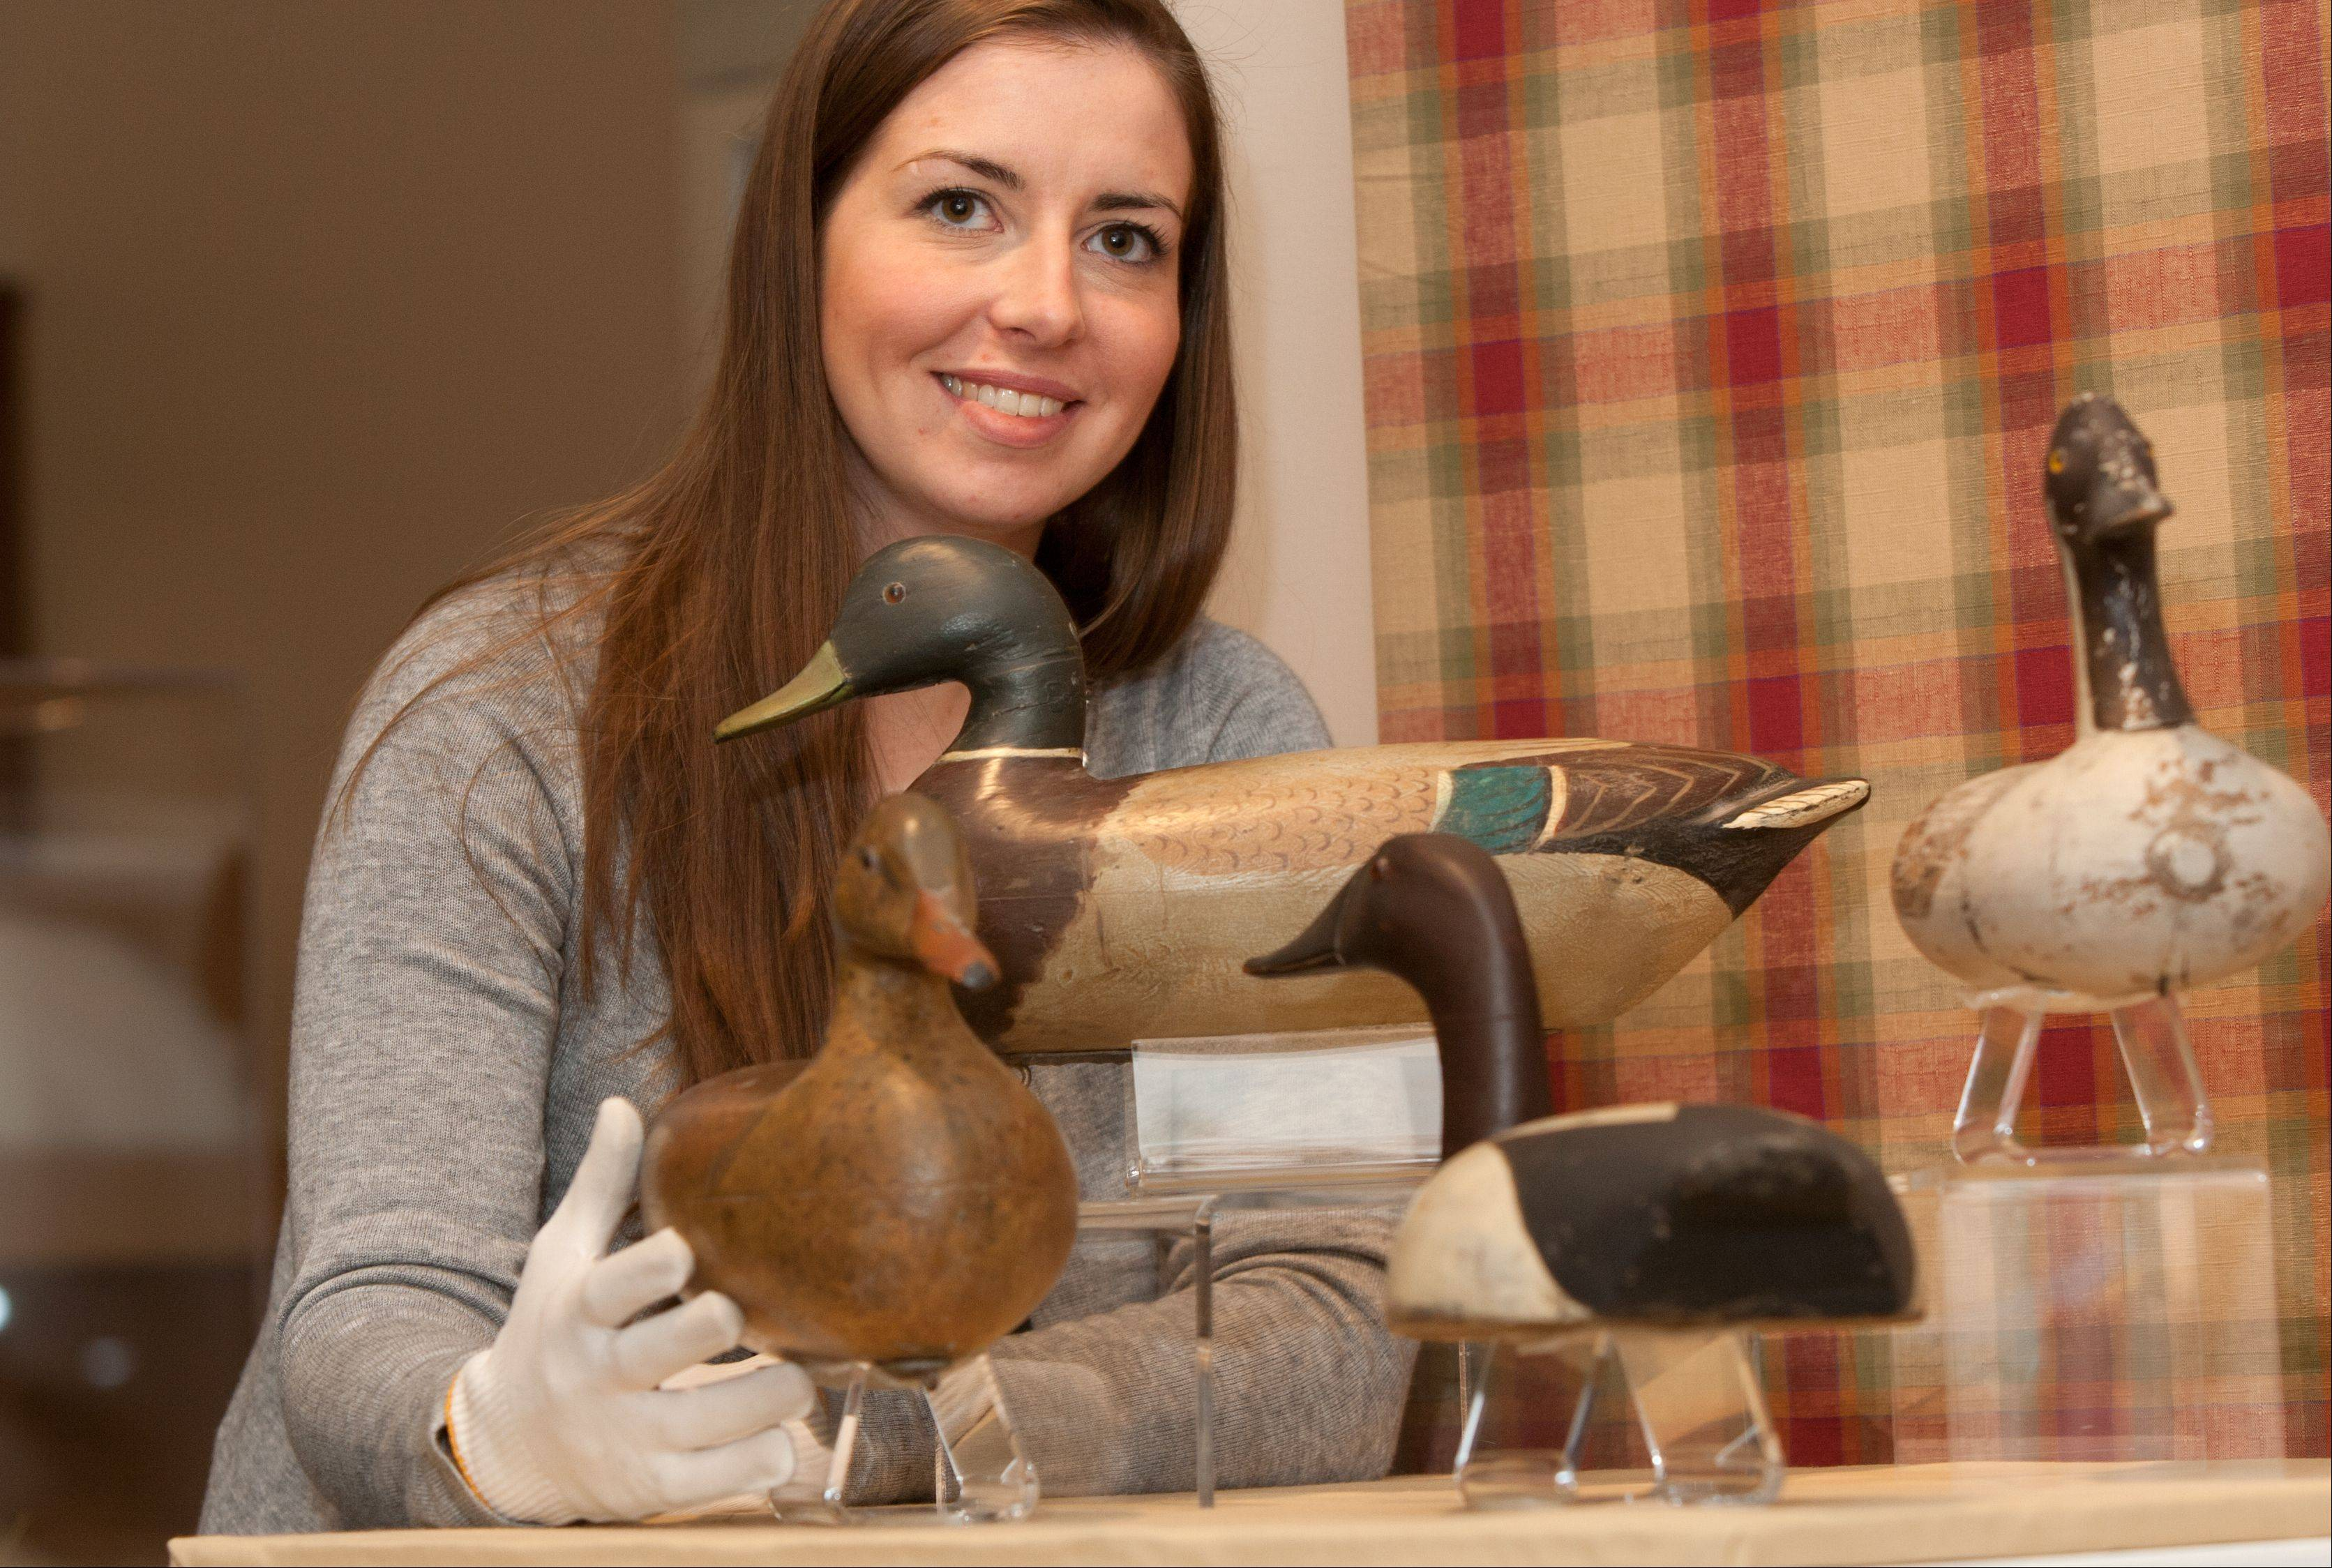 DuPage County Historical Museum Curator Sara Arnas shows hand-painted, hand-carved decoys that are part of the folk art exhibit. The decoys were used in duck hunting.